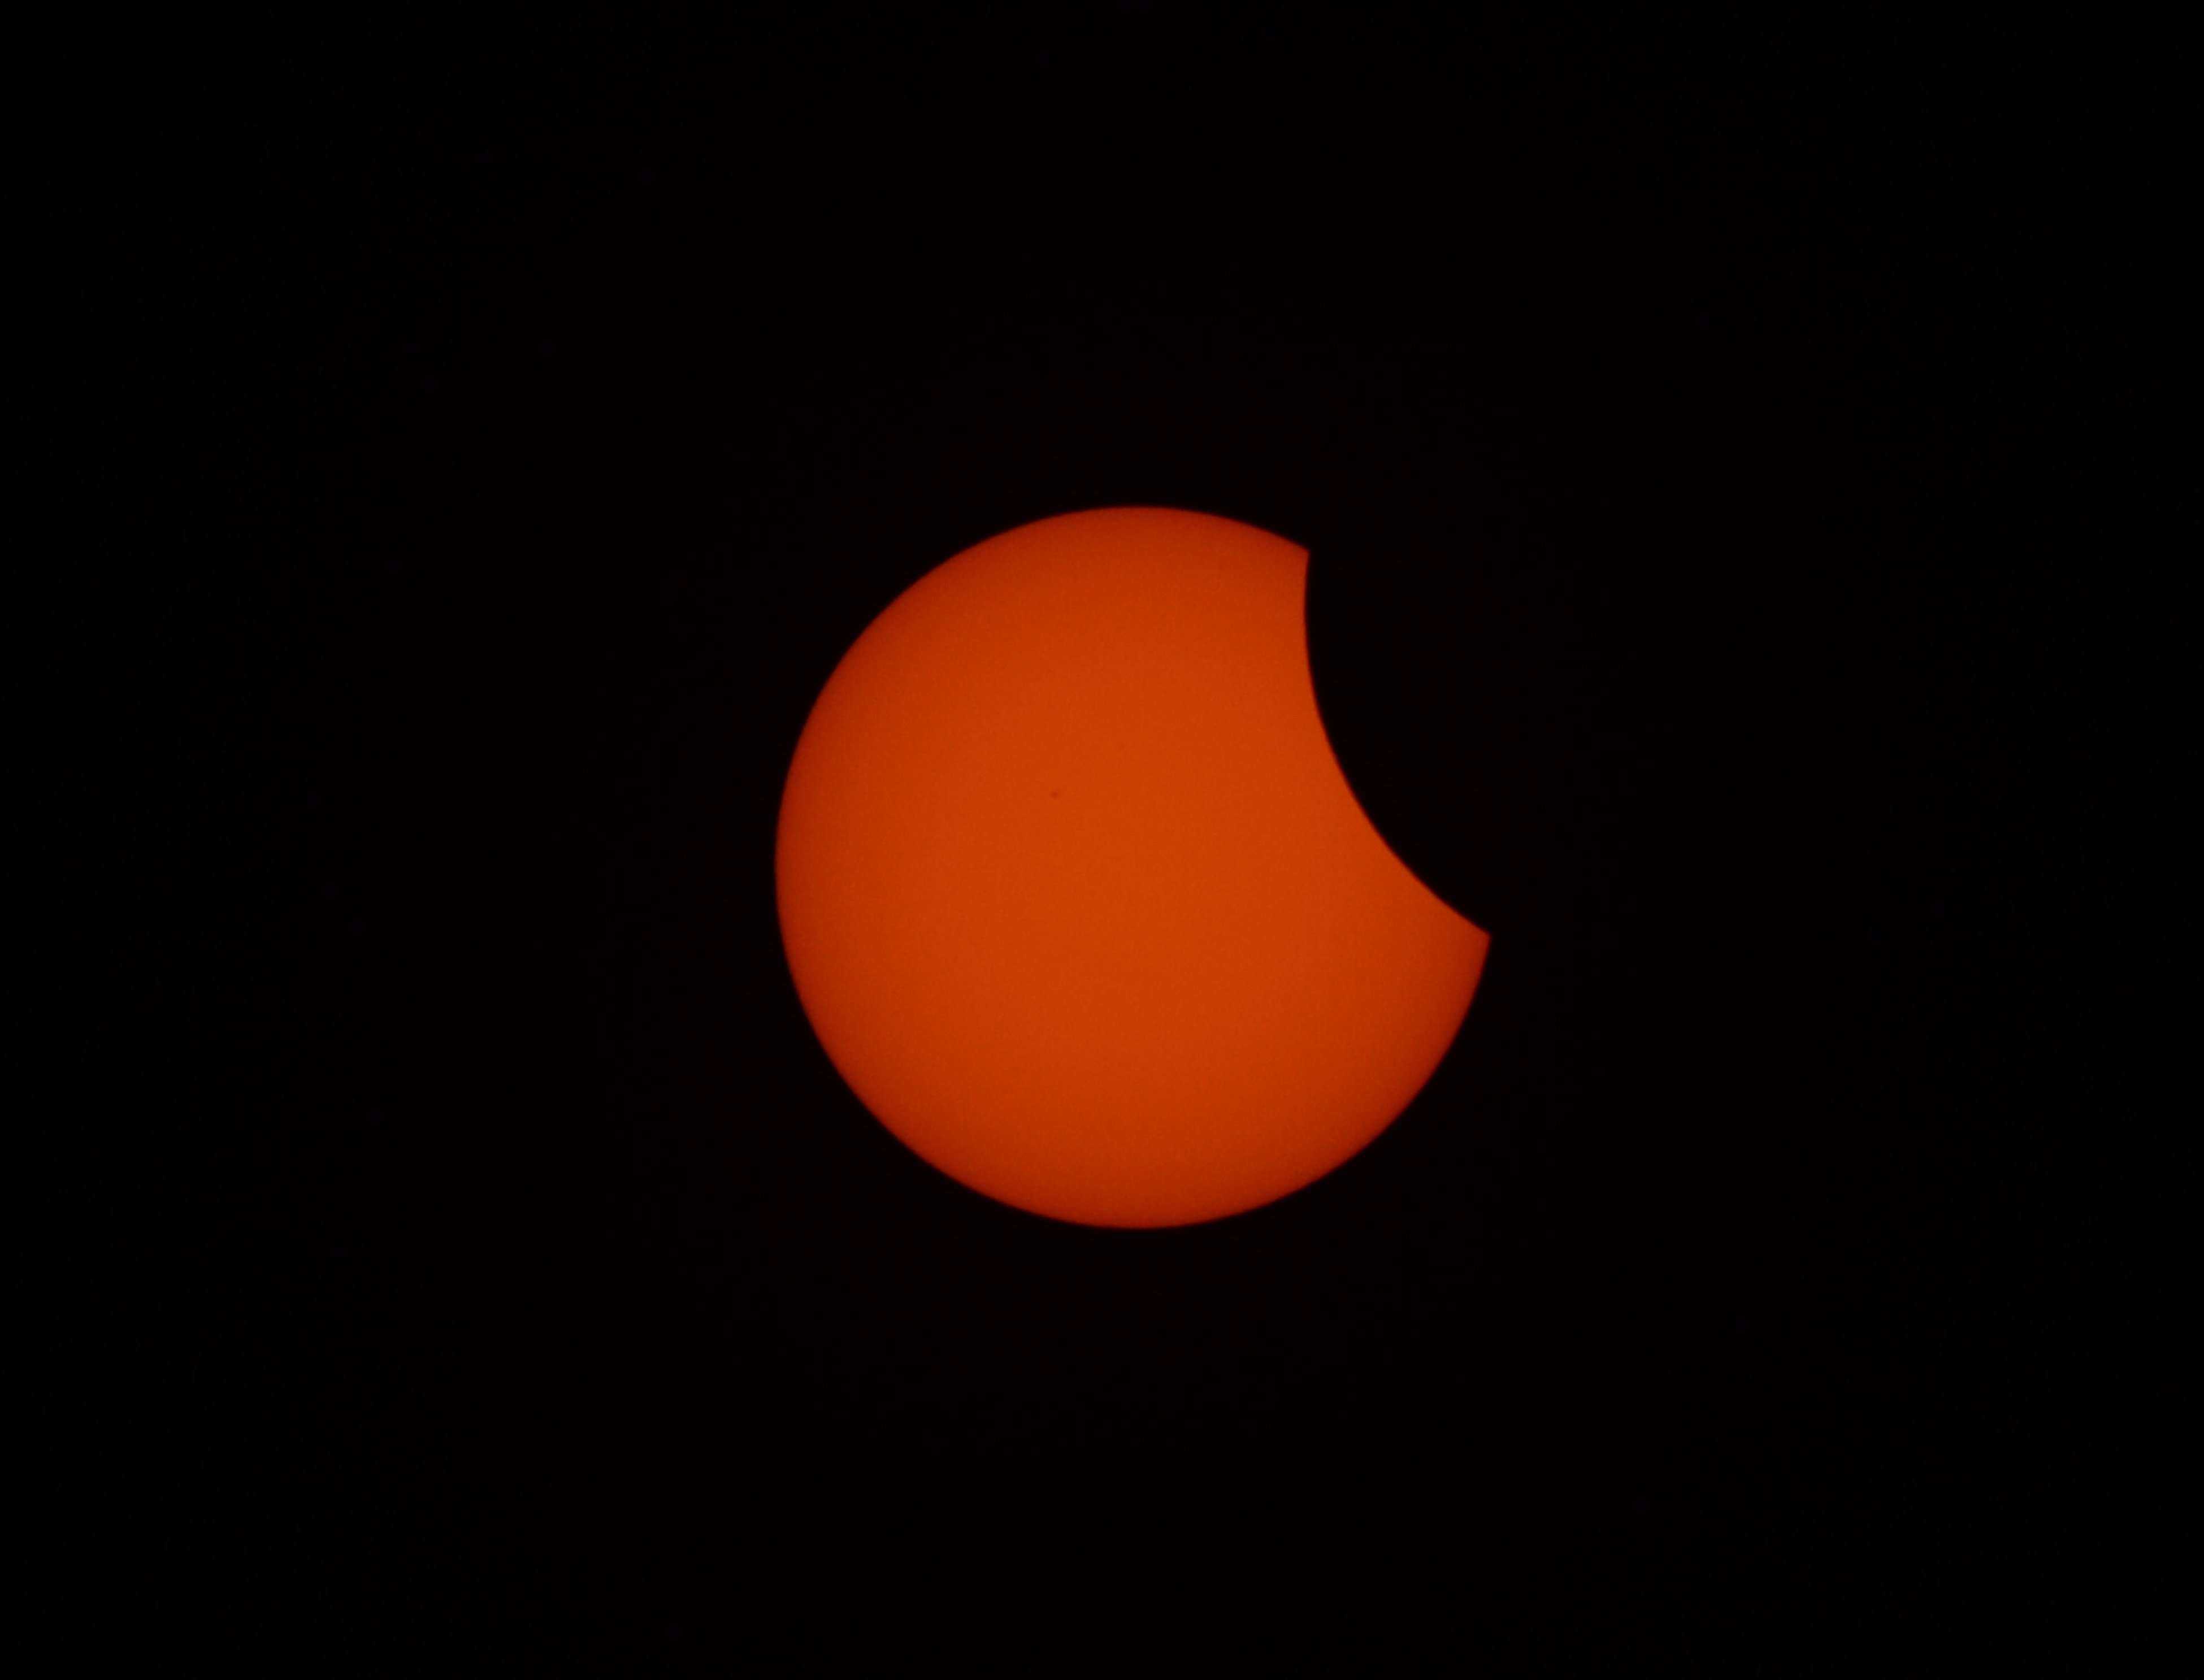 The moon passes in front of the sun during a partial solar eclipse seem from Manila on March 9, 2016.